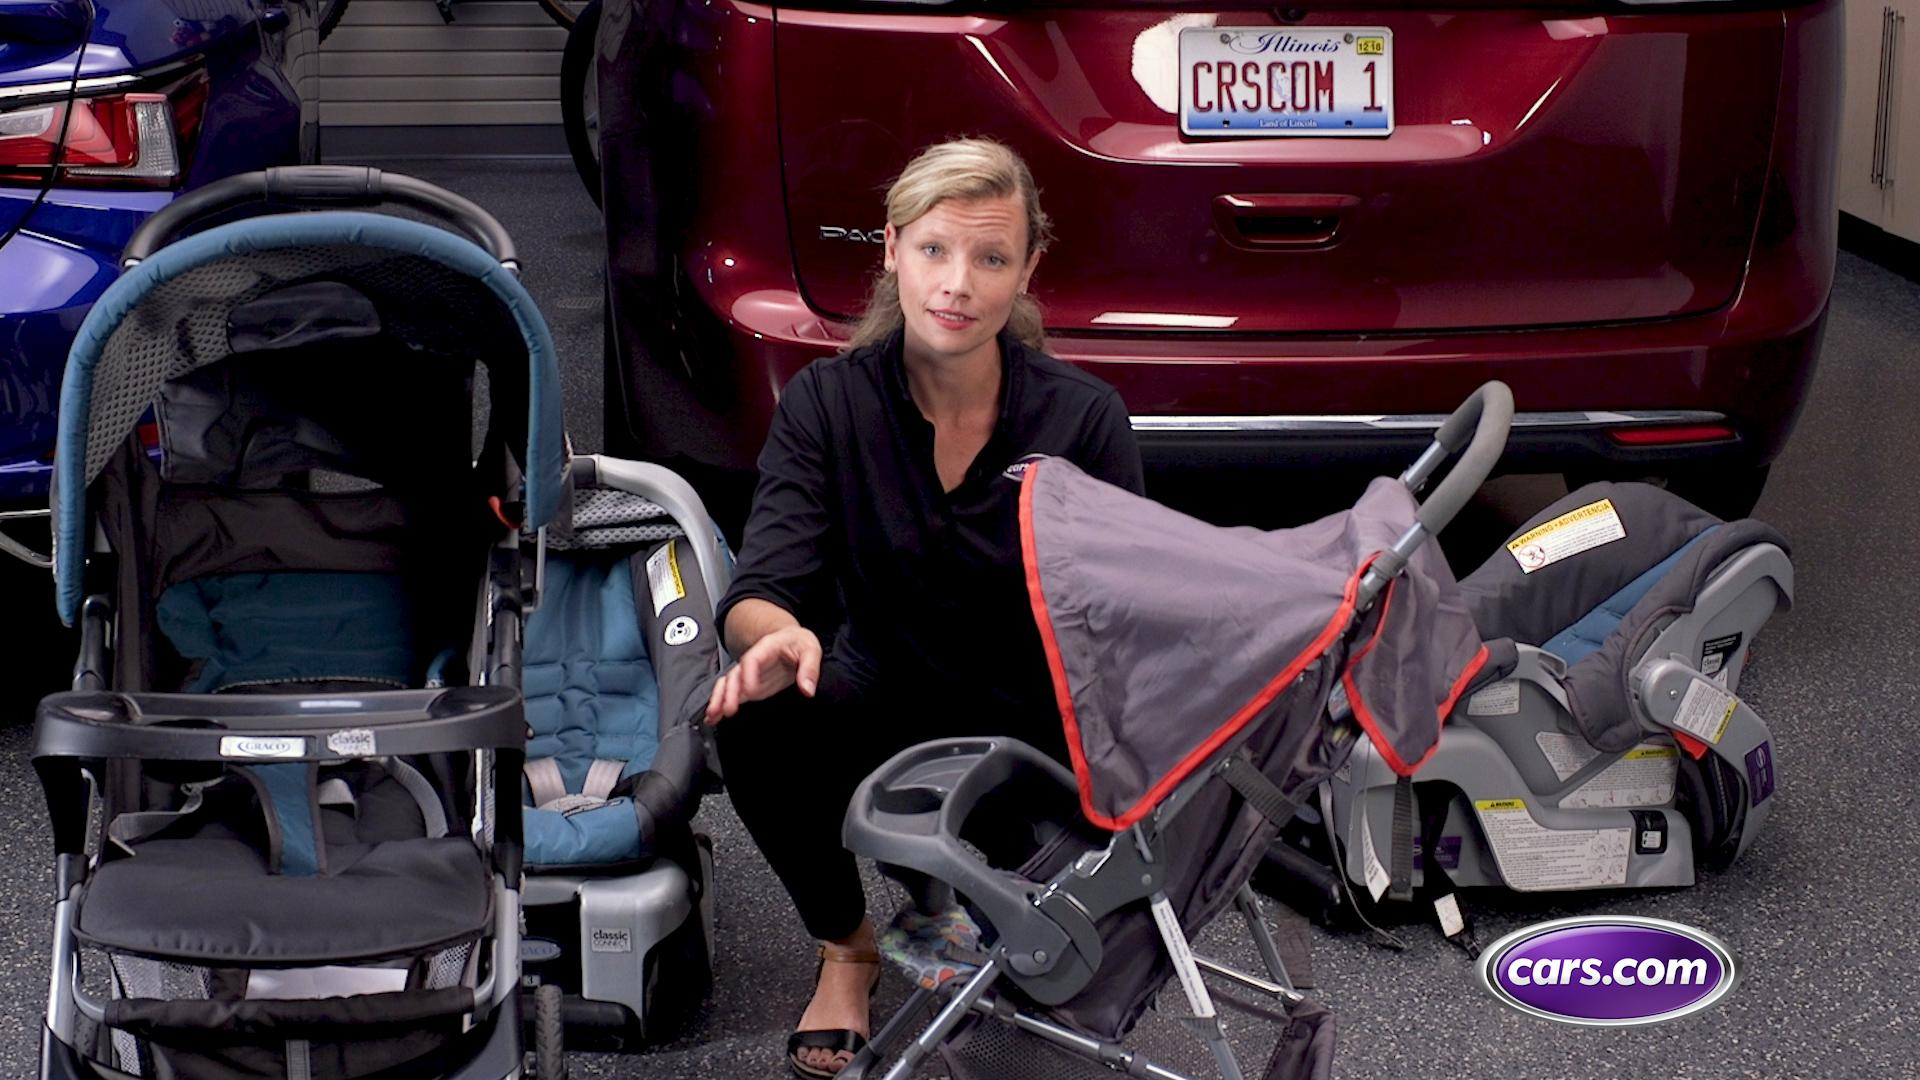 Video: 5 Great Cars for First-Time Parents